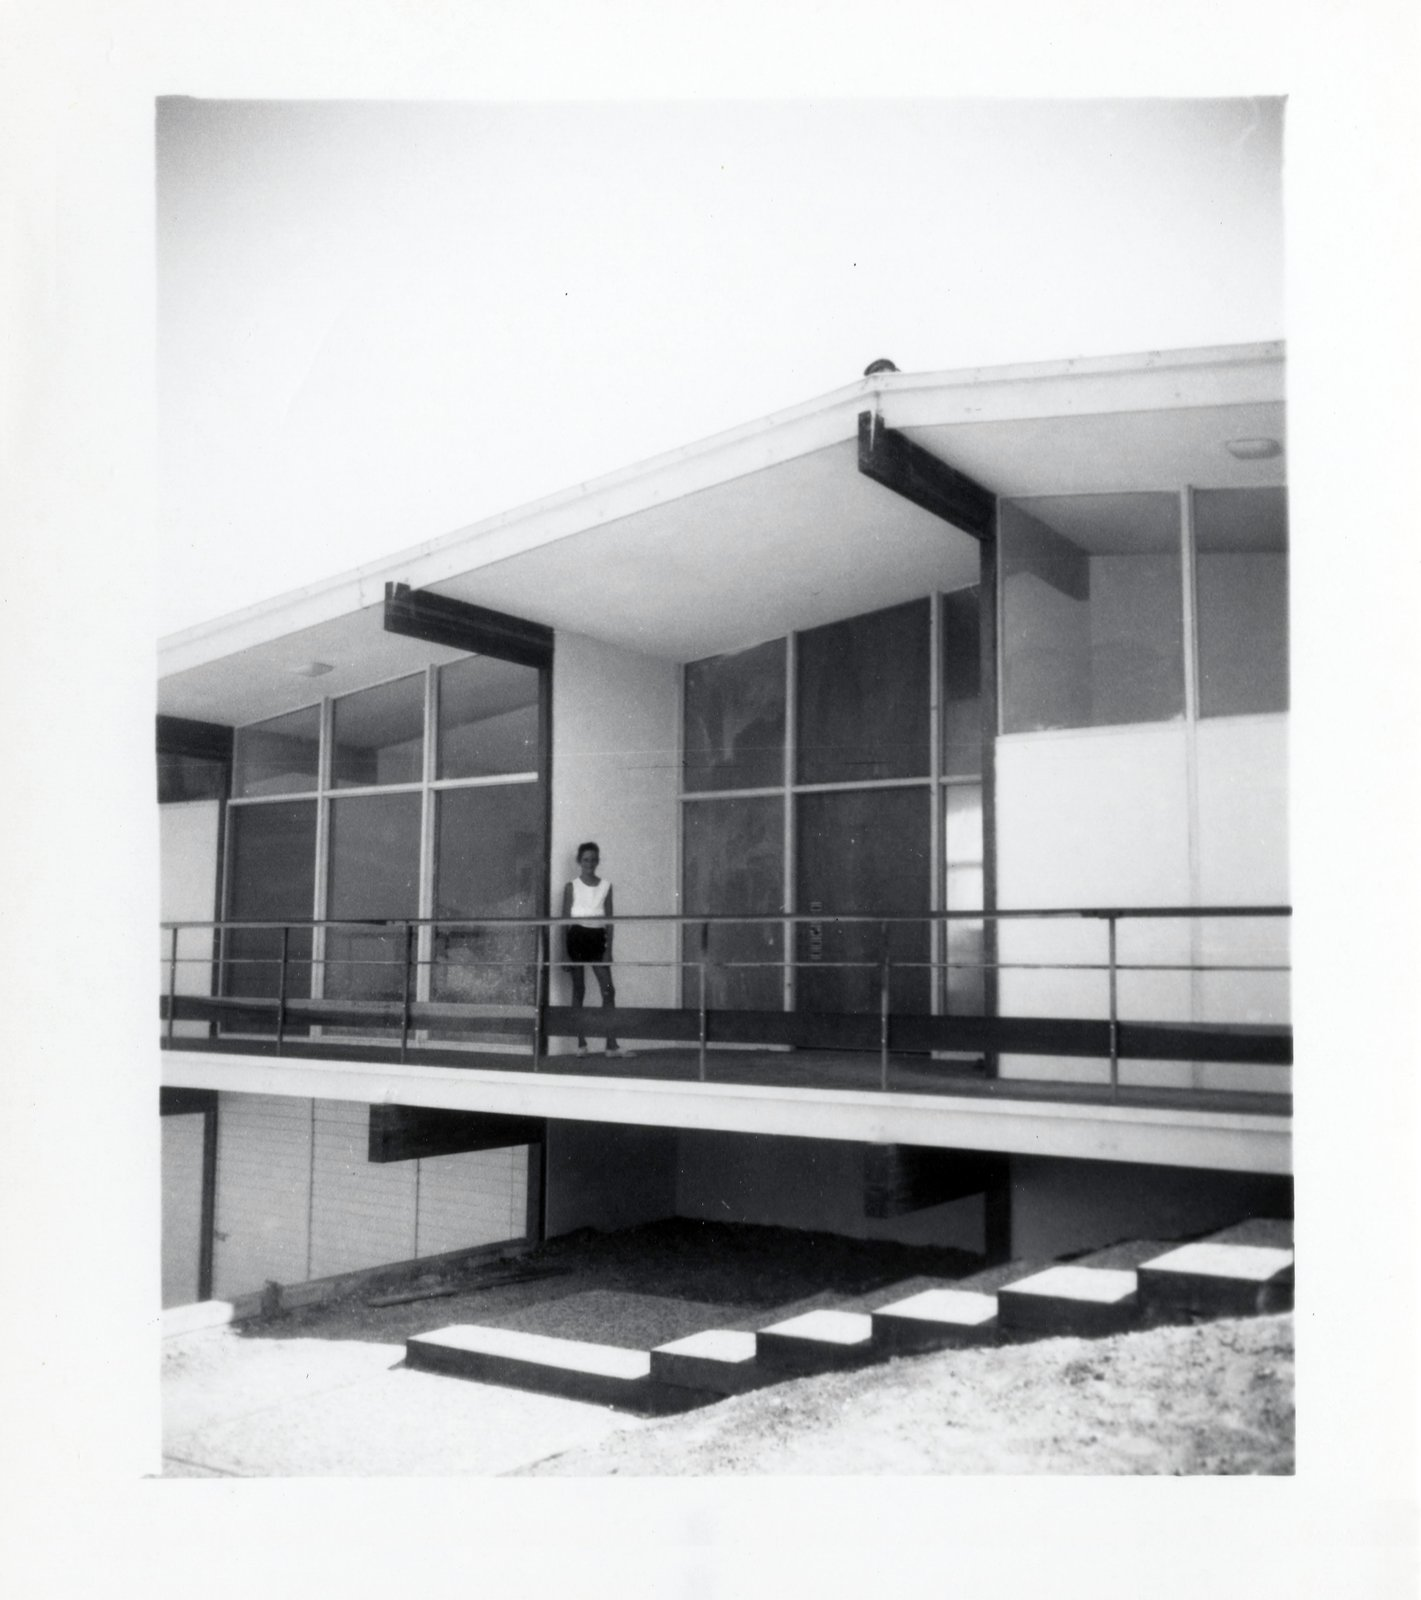 DeLeeuw Residence black and white historic photo of mid century home exterior with person standing on upper level patio.